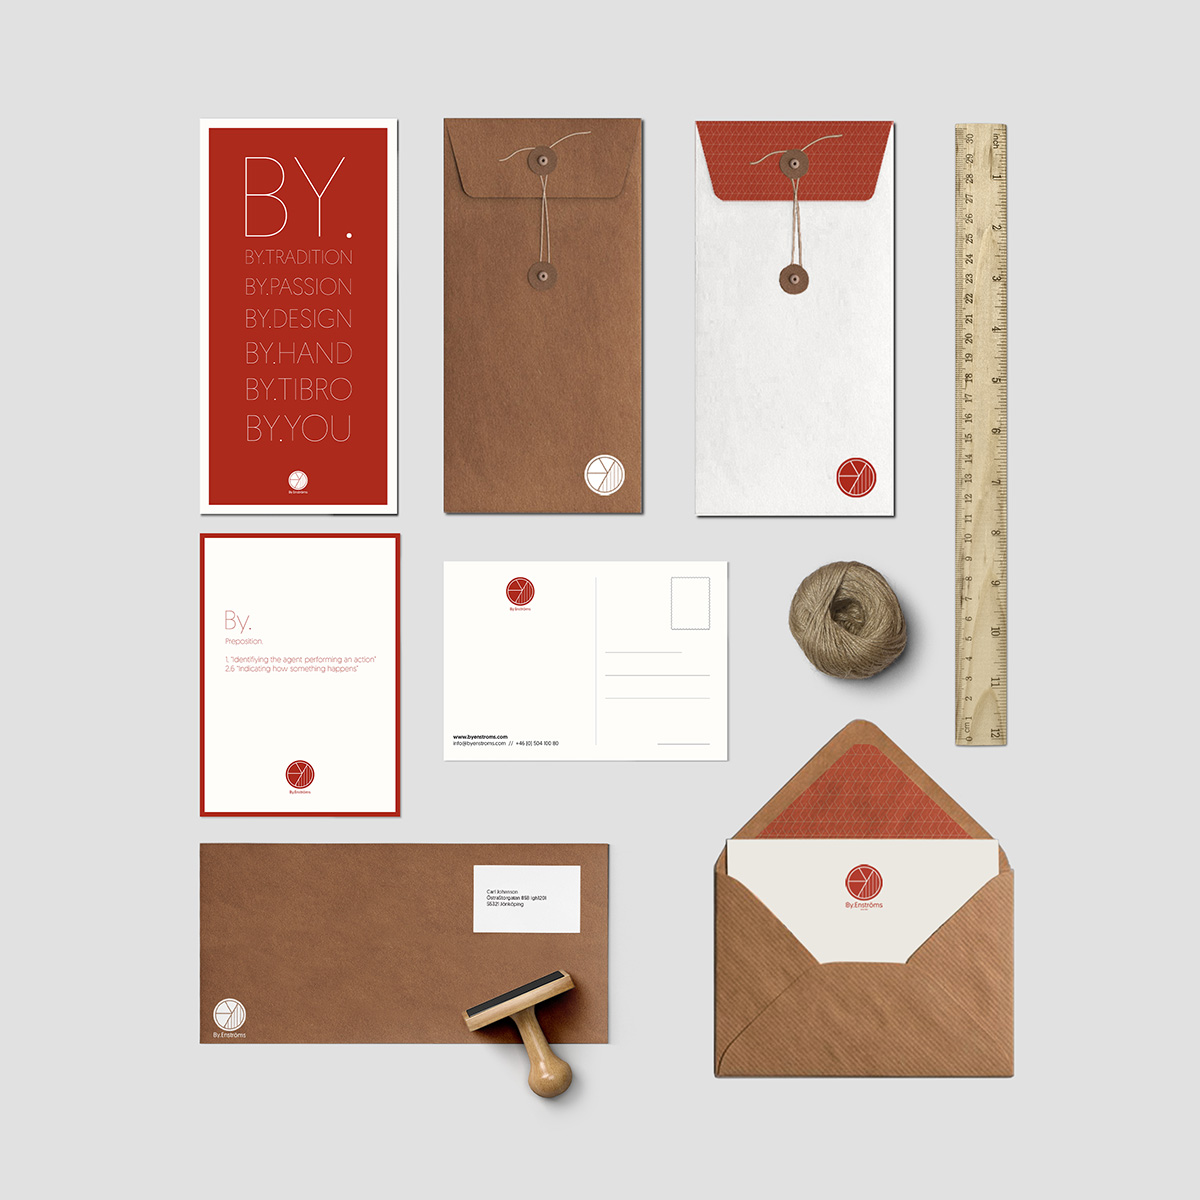 APPLICATIONS - Once the brand was designed, some different applications of it were designed. These applications were envelopes, postcards, catalogues, visit cards, labels, posters...